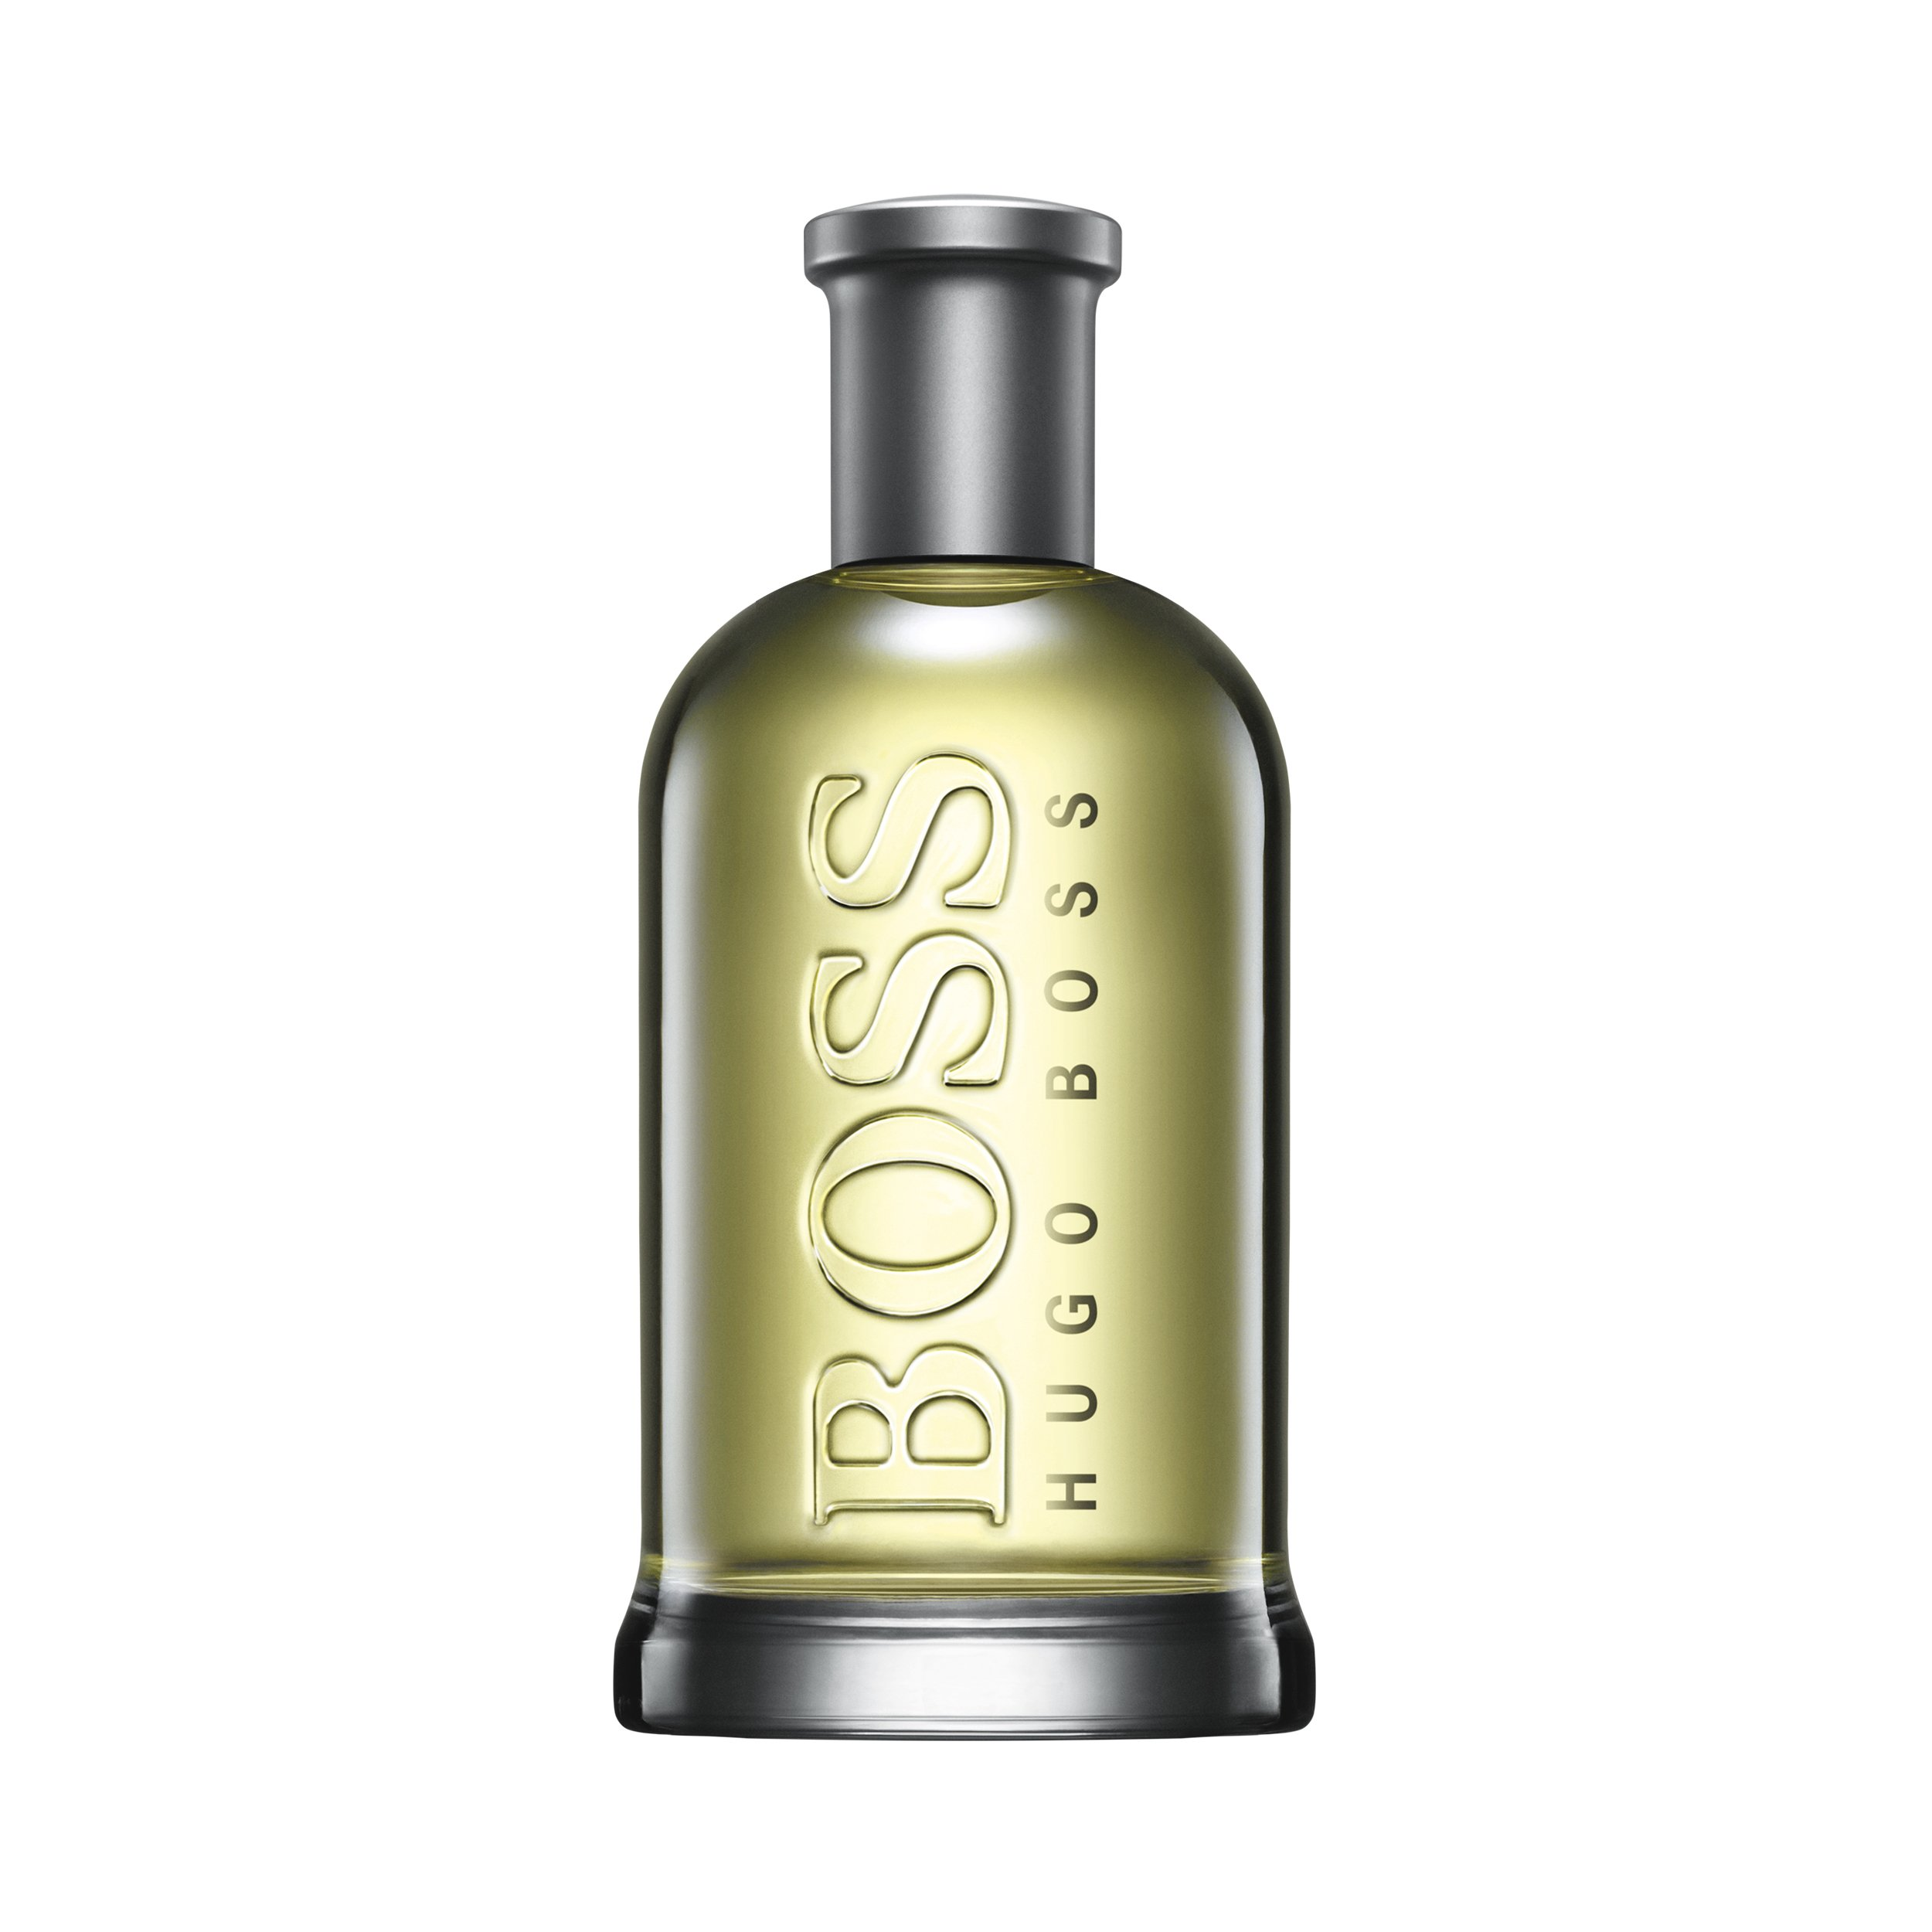 Hugo Boss BOTTLED Eau de Toilette, 6.7 Fl Oz